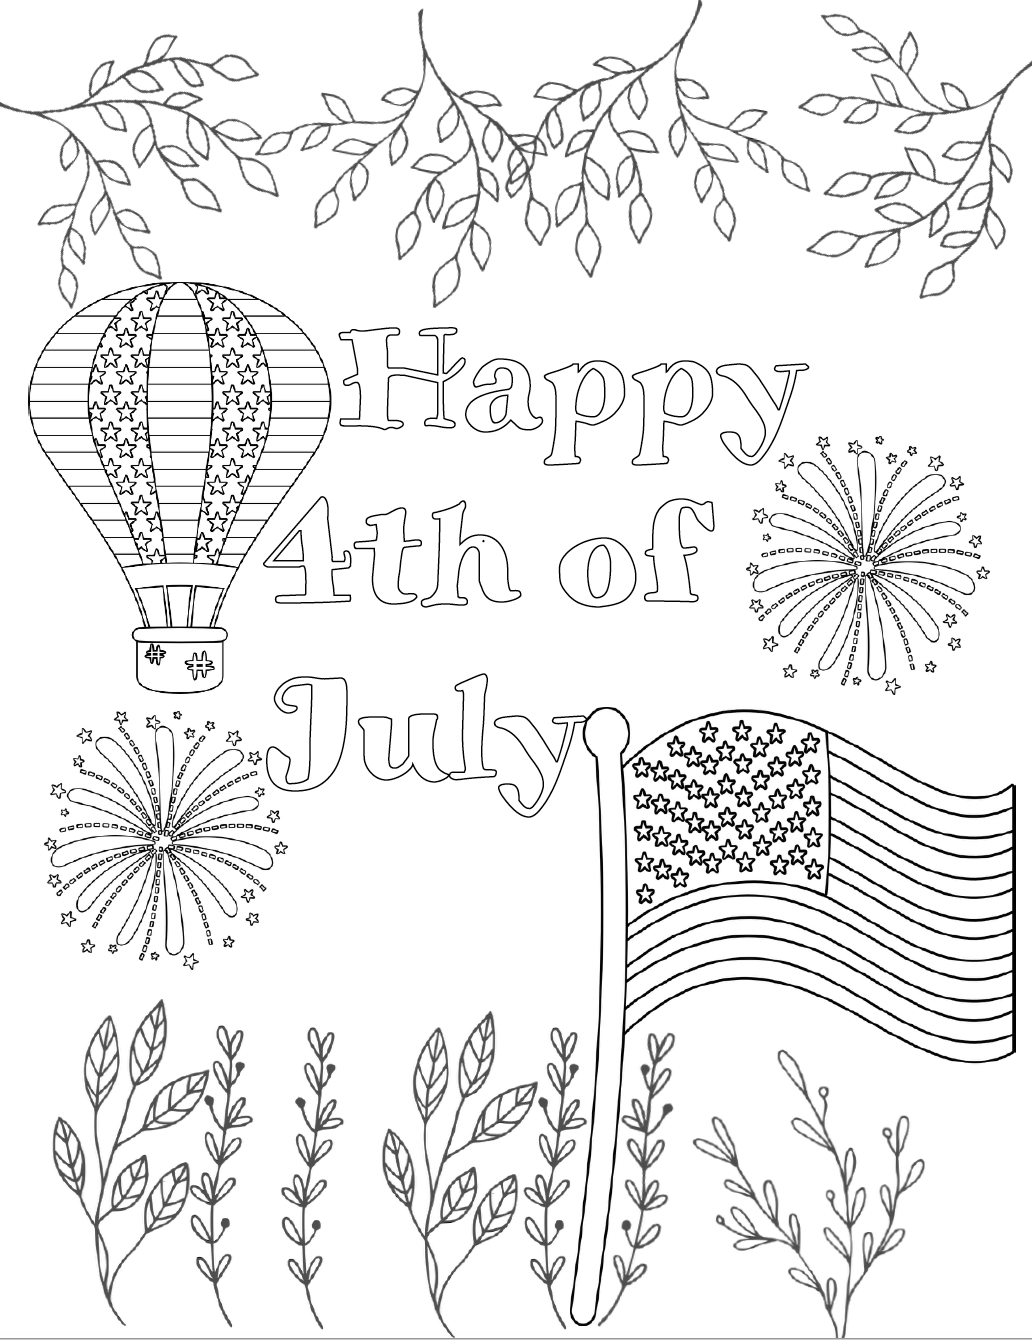 july 4 coloring pages 14 best 4th of july drawings images on pinterest july pages coloring 4